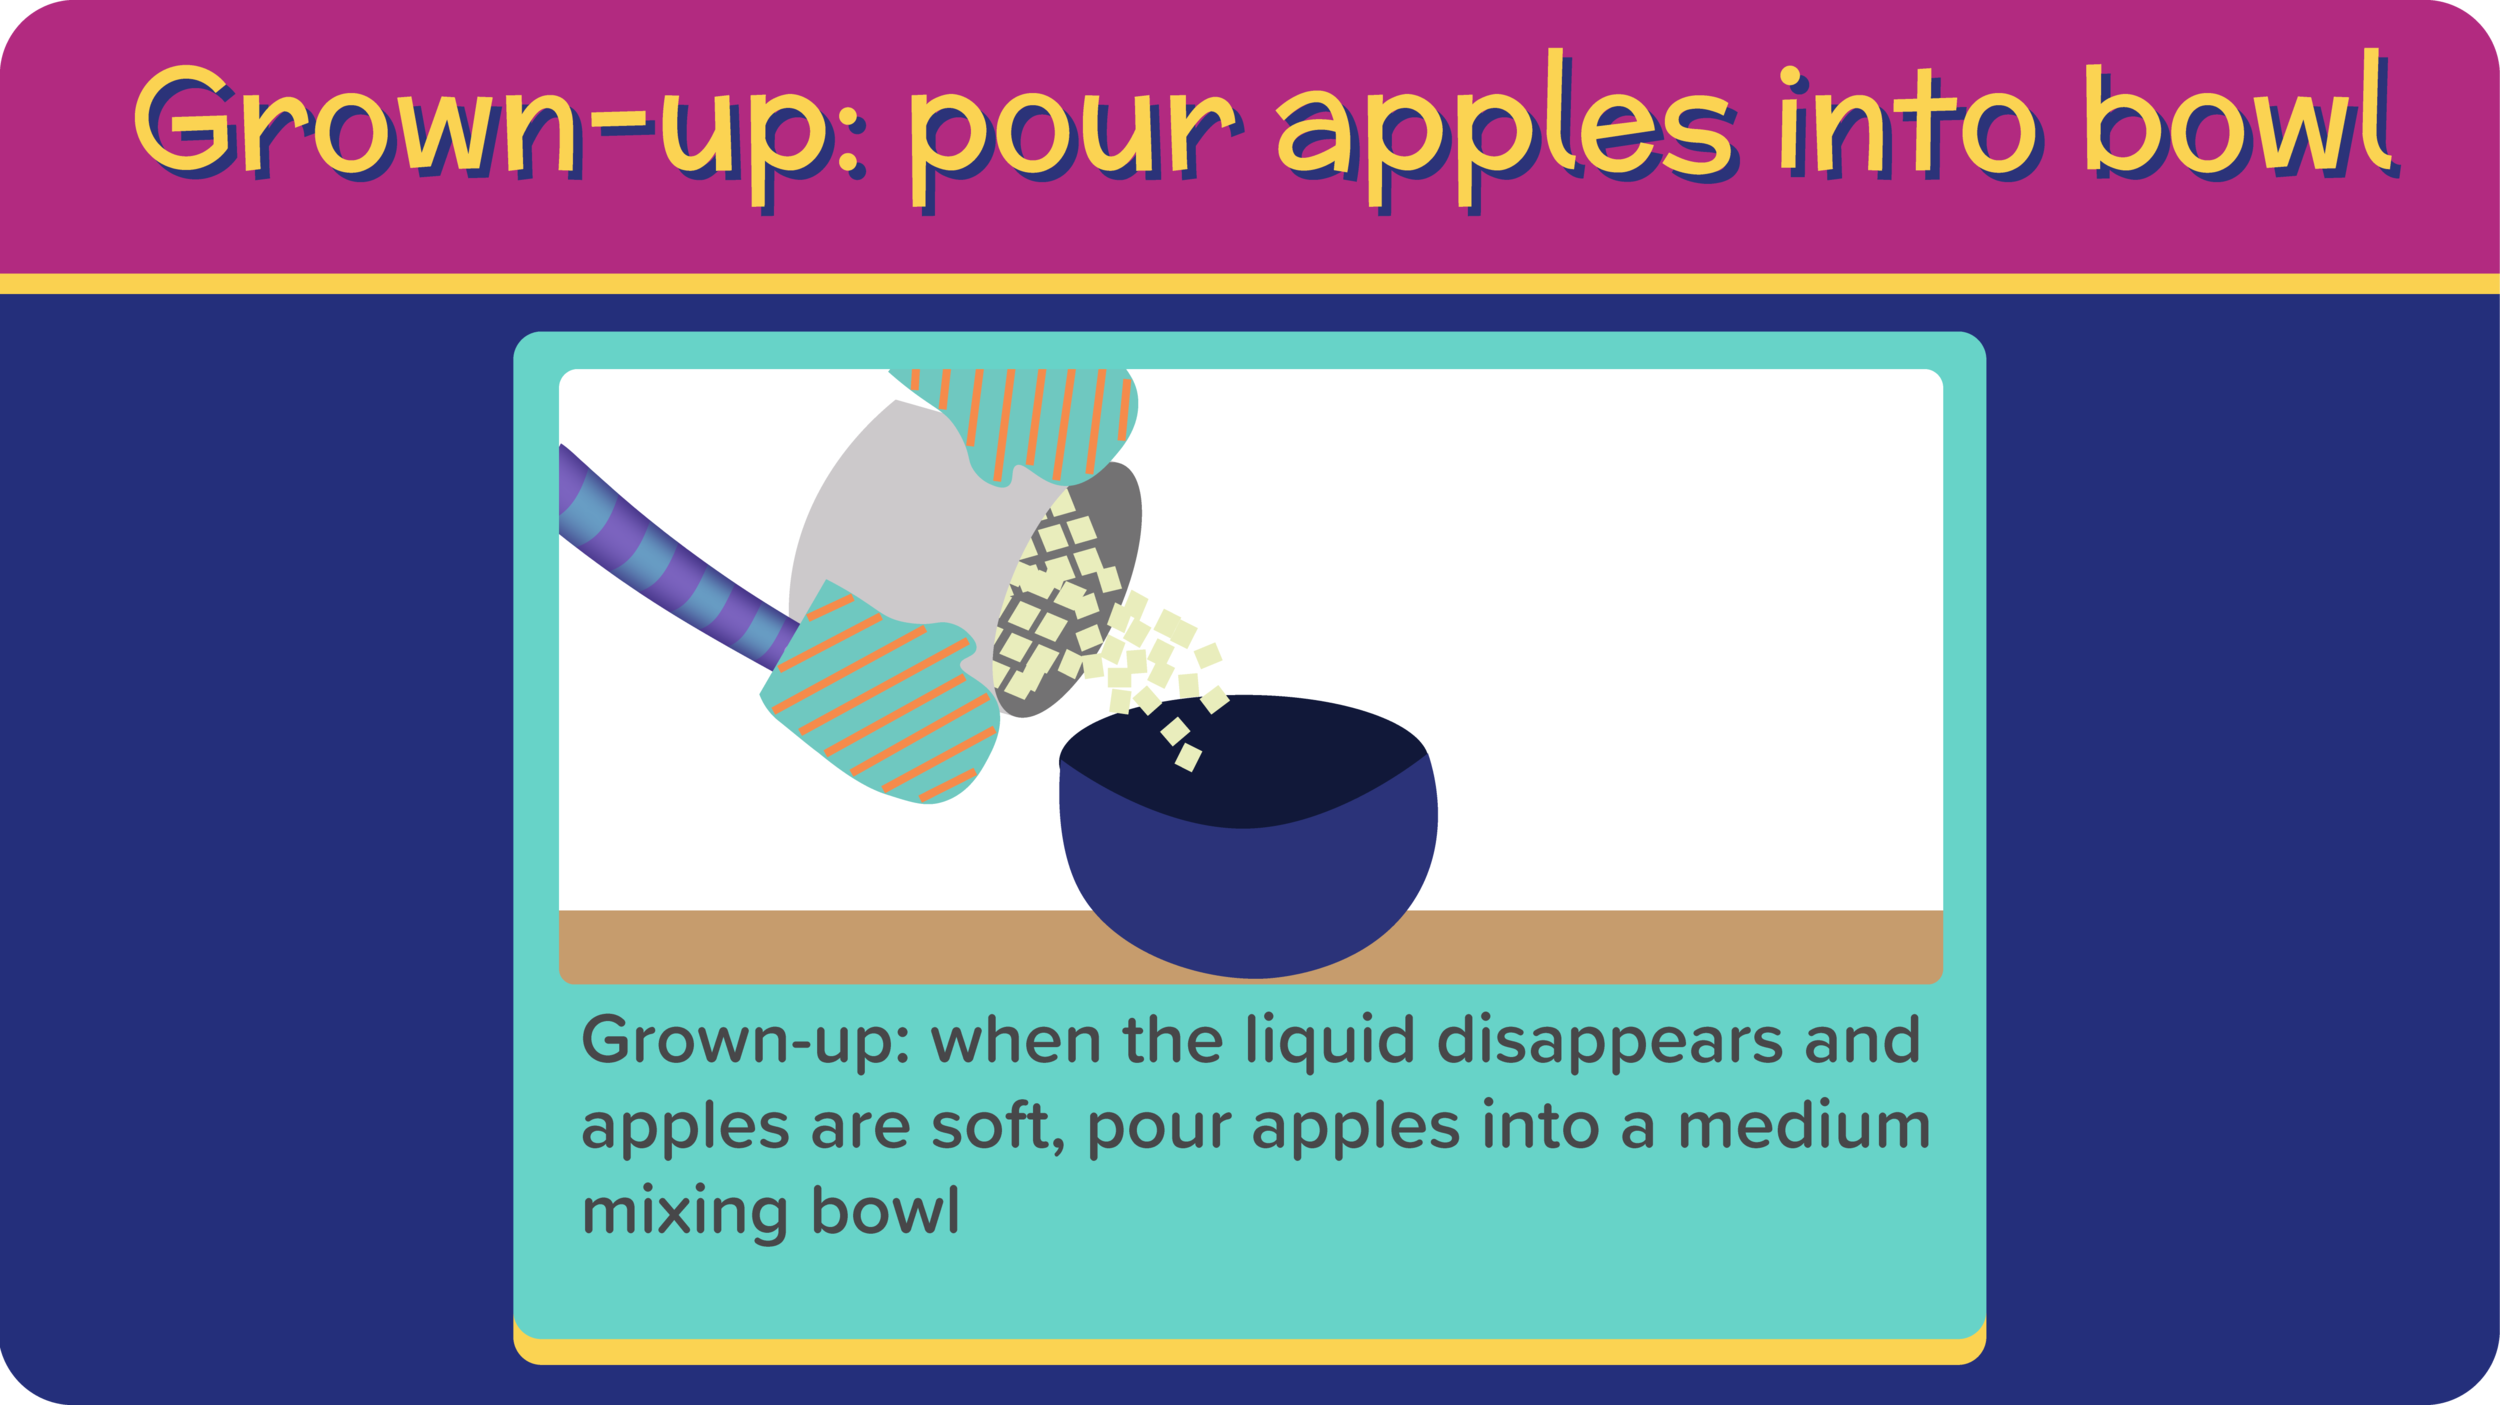 18_AppleSauce_pour into bowl-01.png